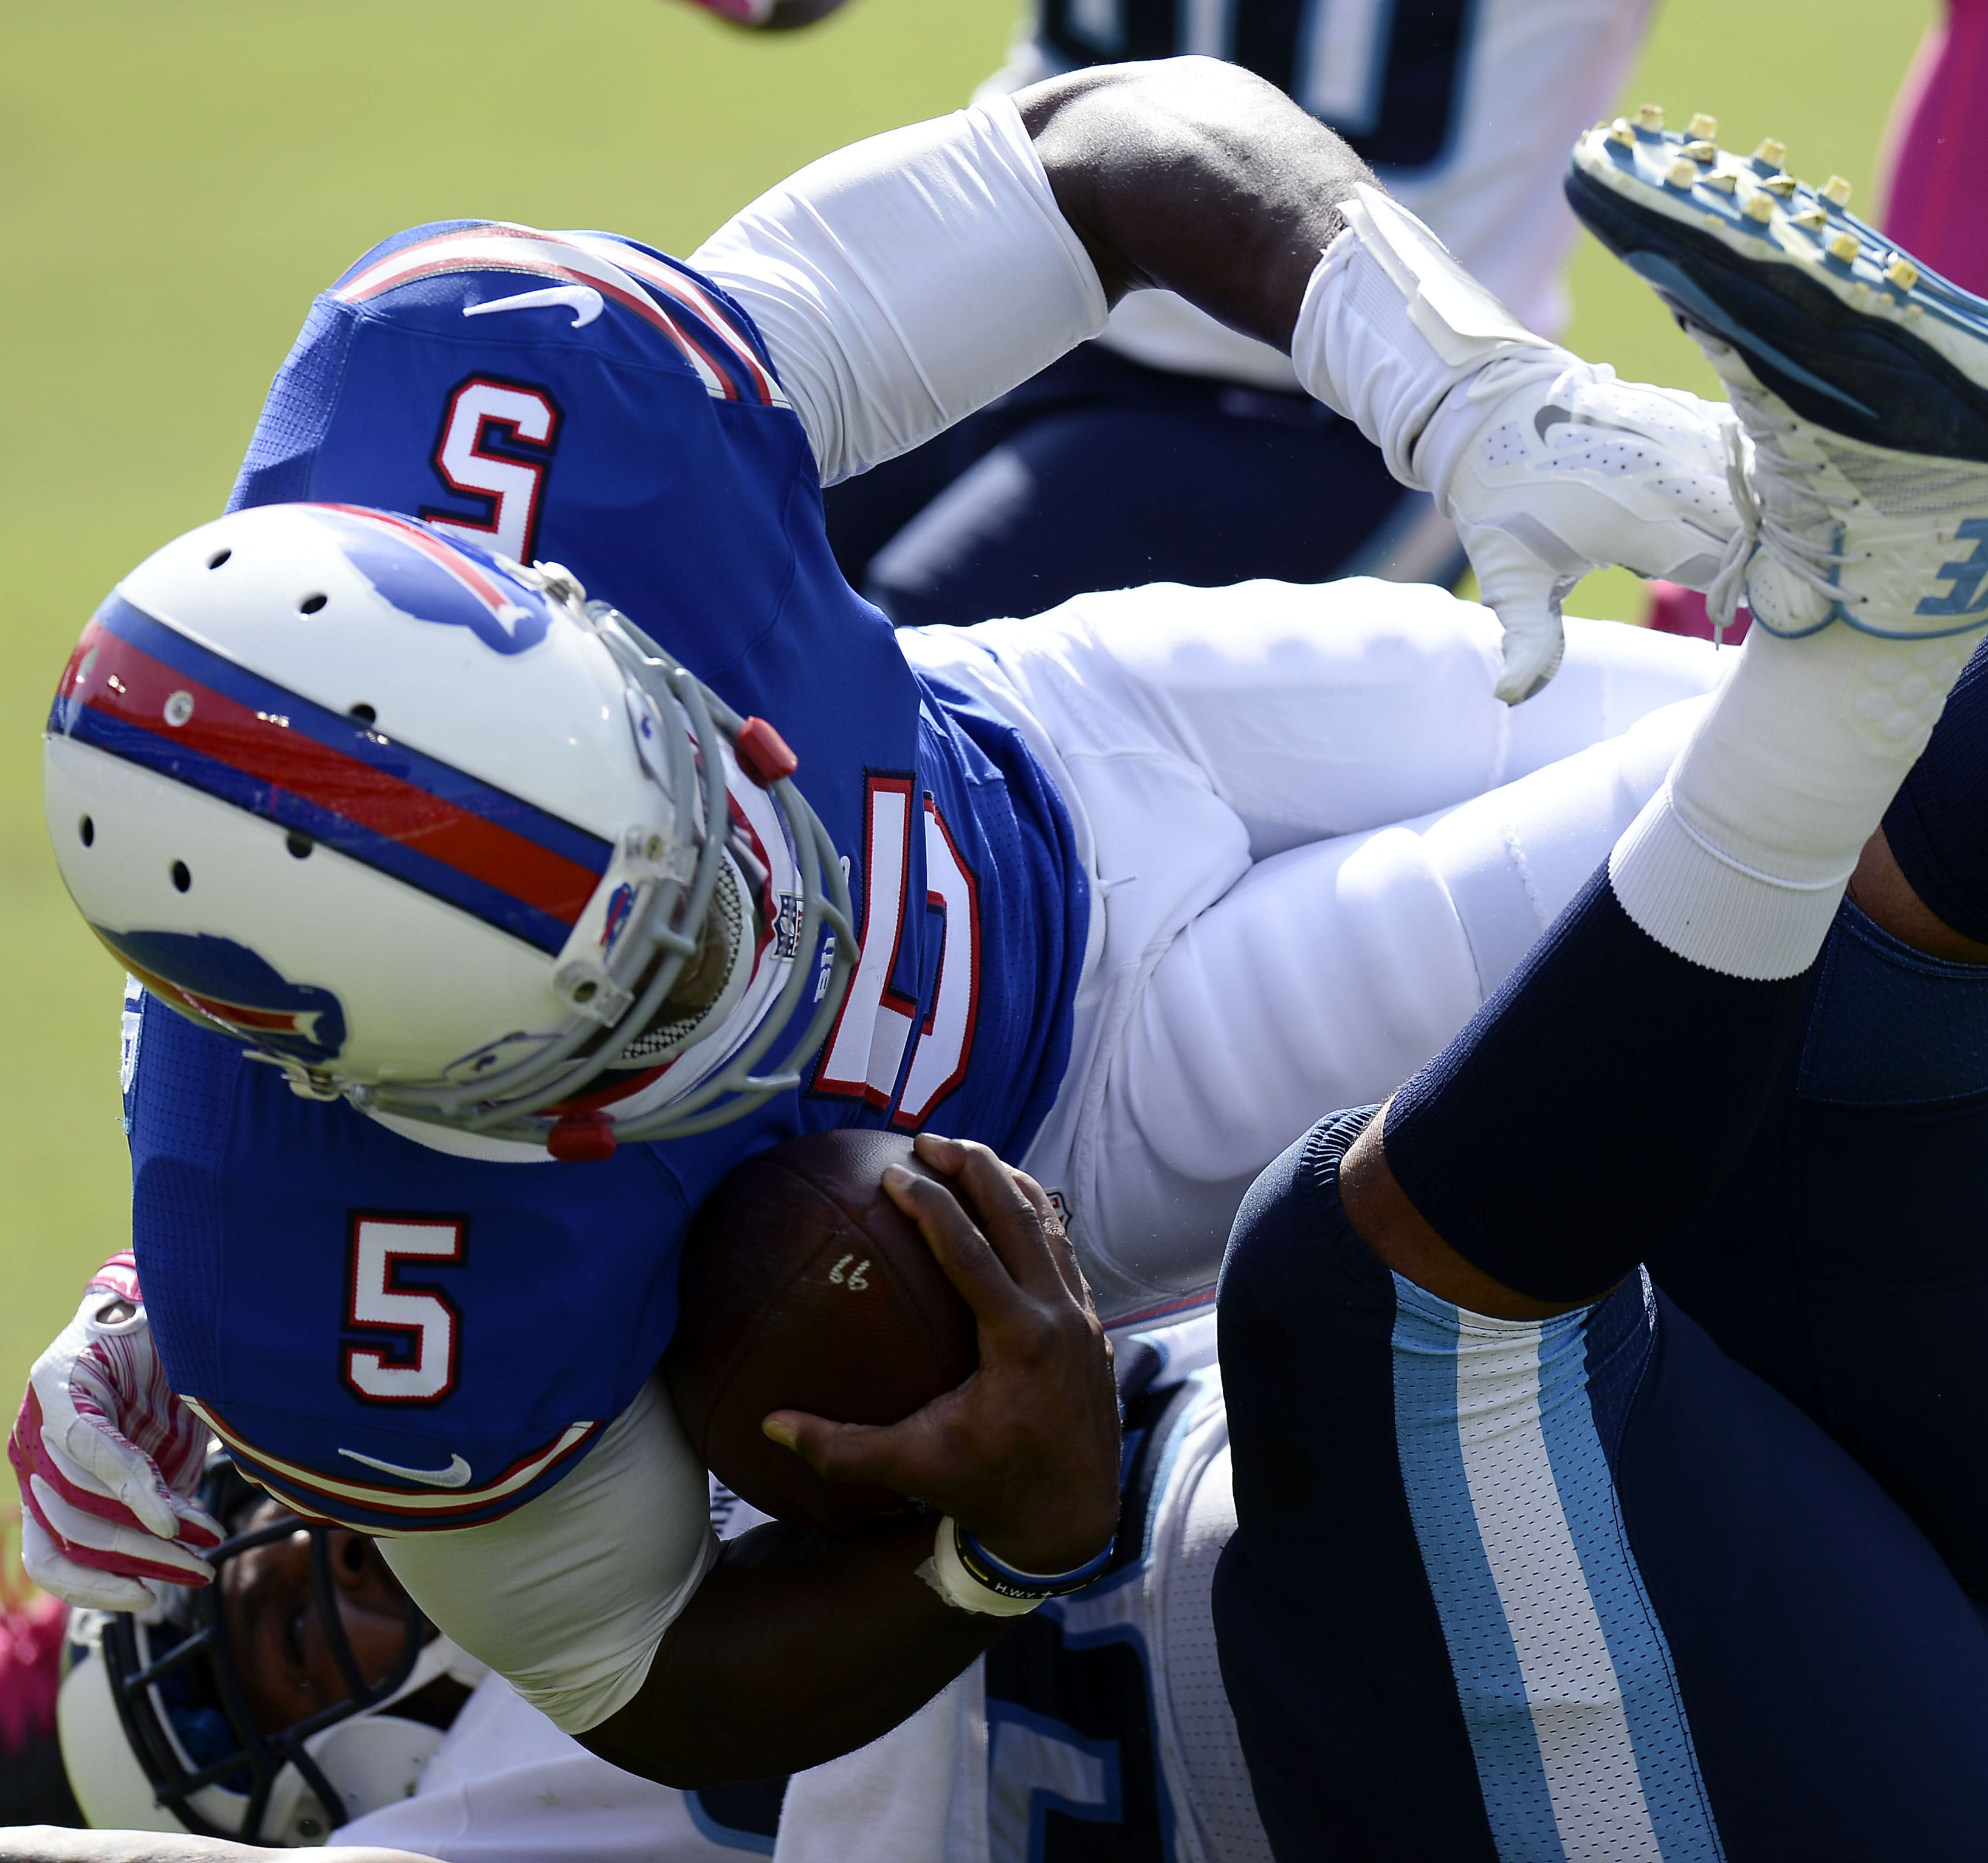 Buffalo Bills quarterback Tyrod Taylor (5) is brought down in the first half of an NFL football game against the Tennessee Titans, Sunday, Oct. 11, 2015, in Nashville, Tenn. (AP Photo/Mark Zaleski)